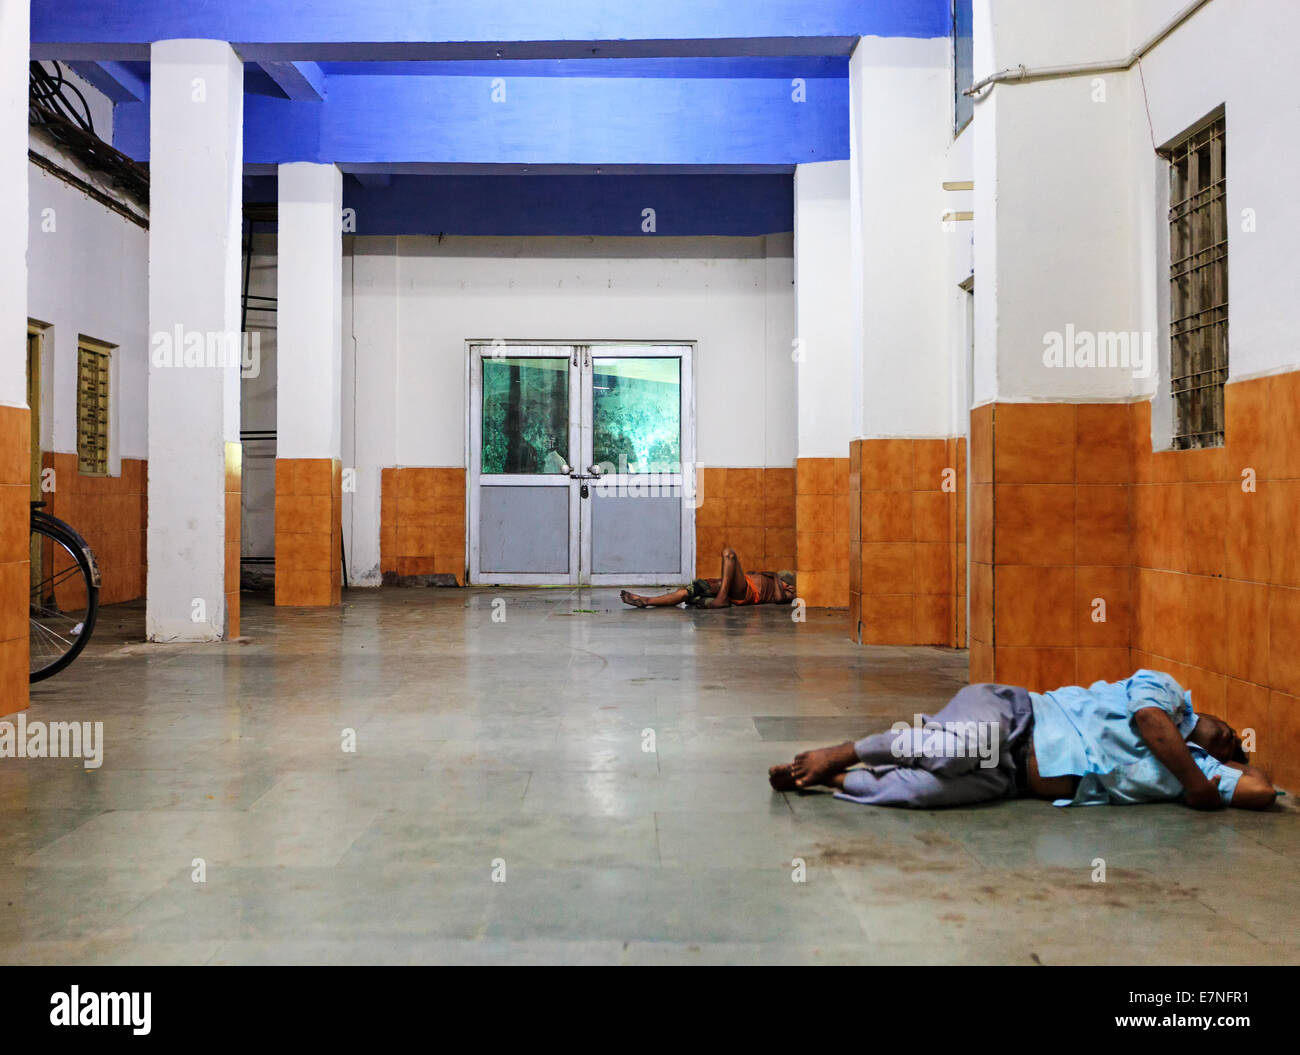 homeless people india indian stockfotos homeless people india indian bilder alamy. Black Bedroom Furniture Sets. Home Design Ideas